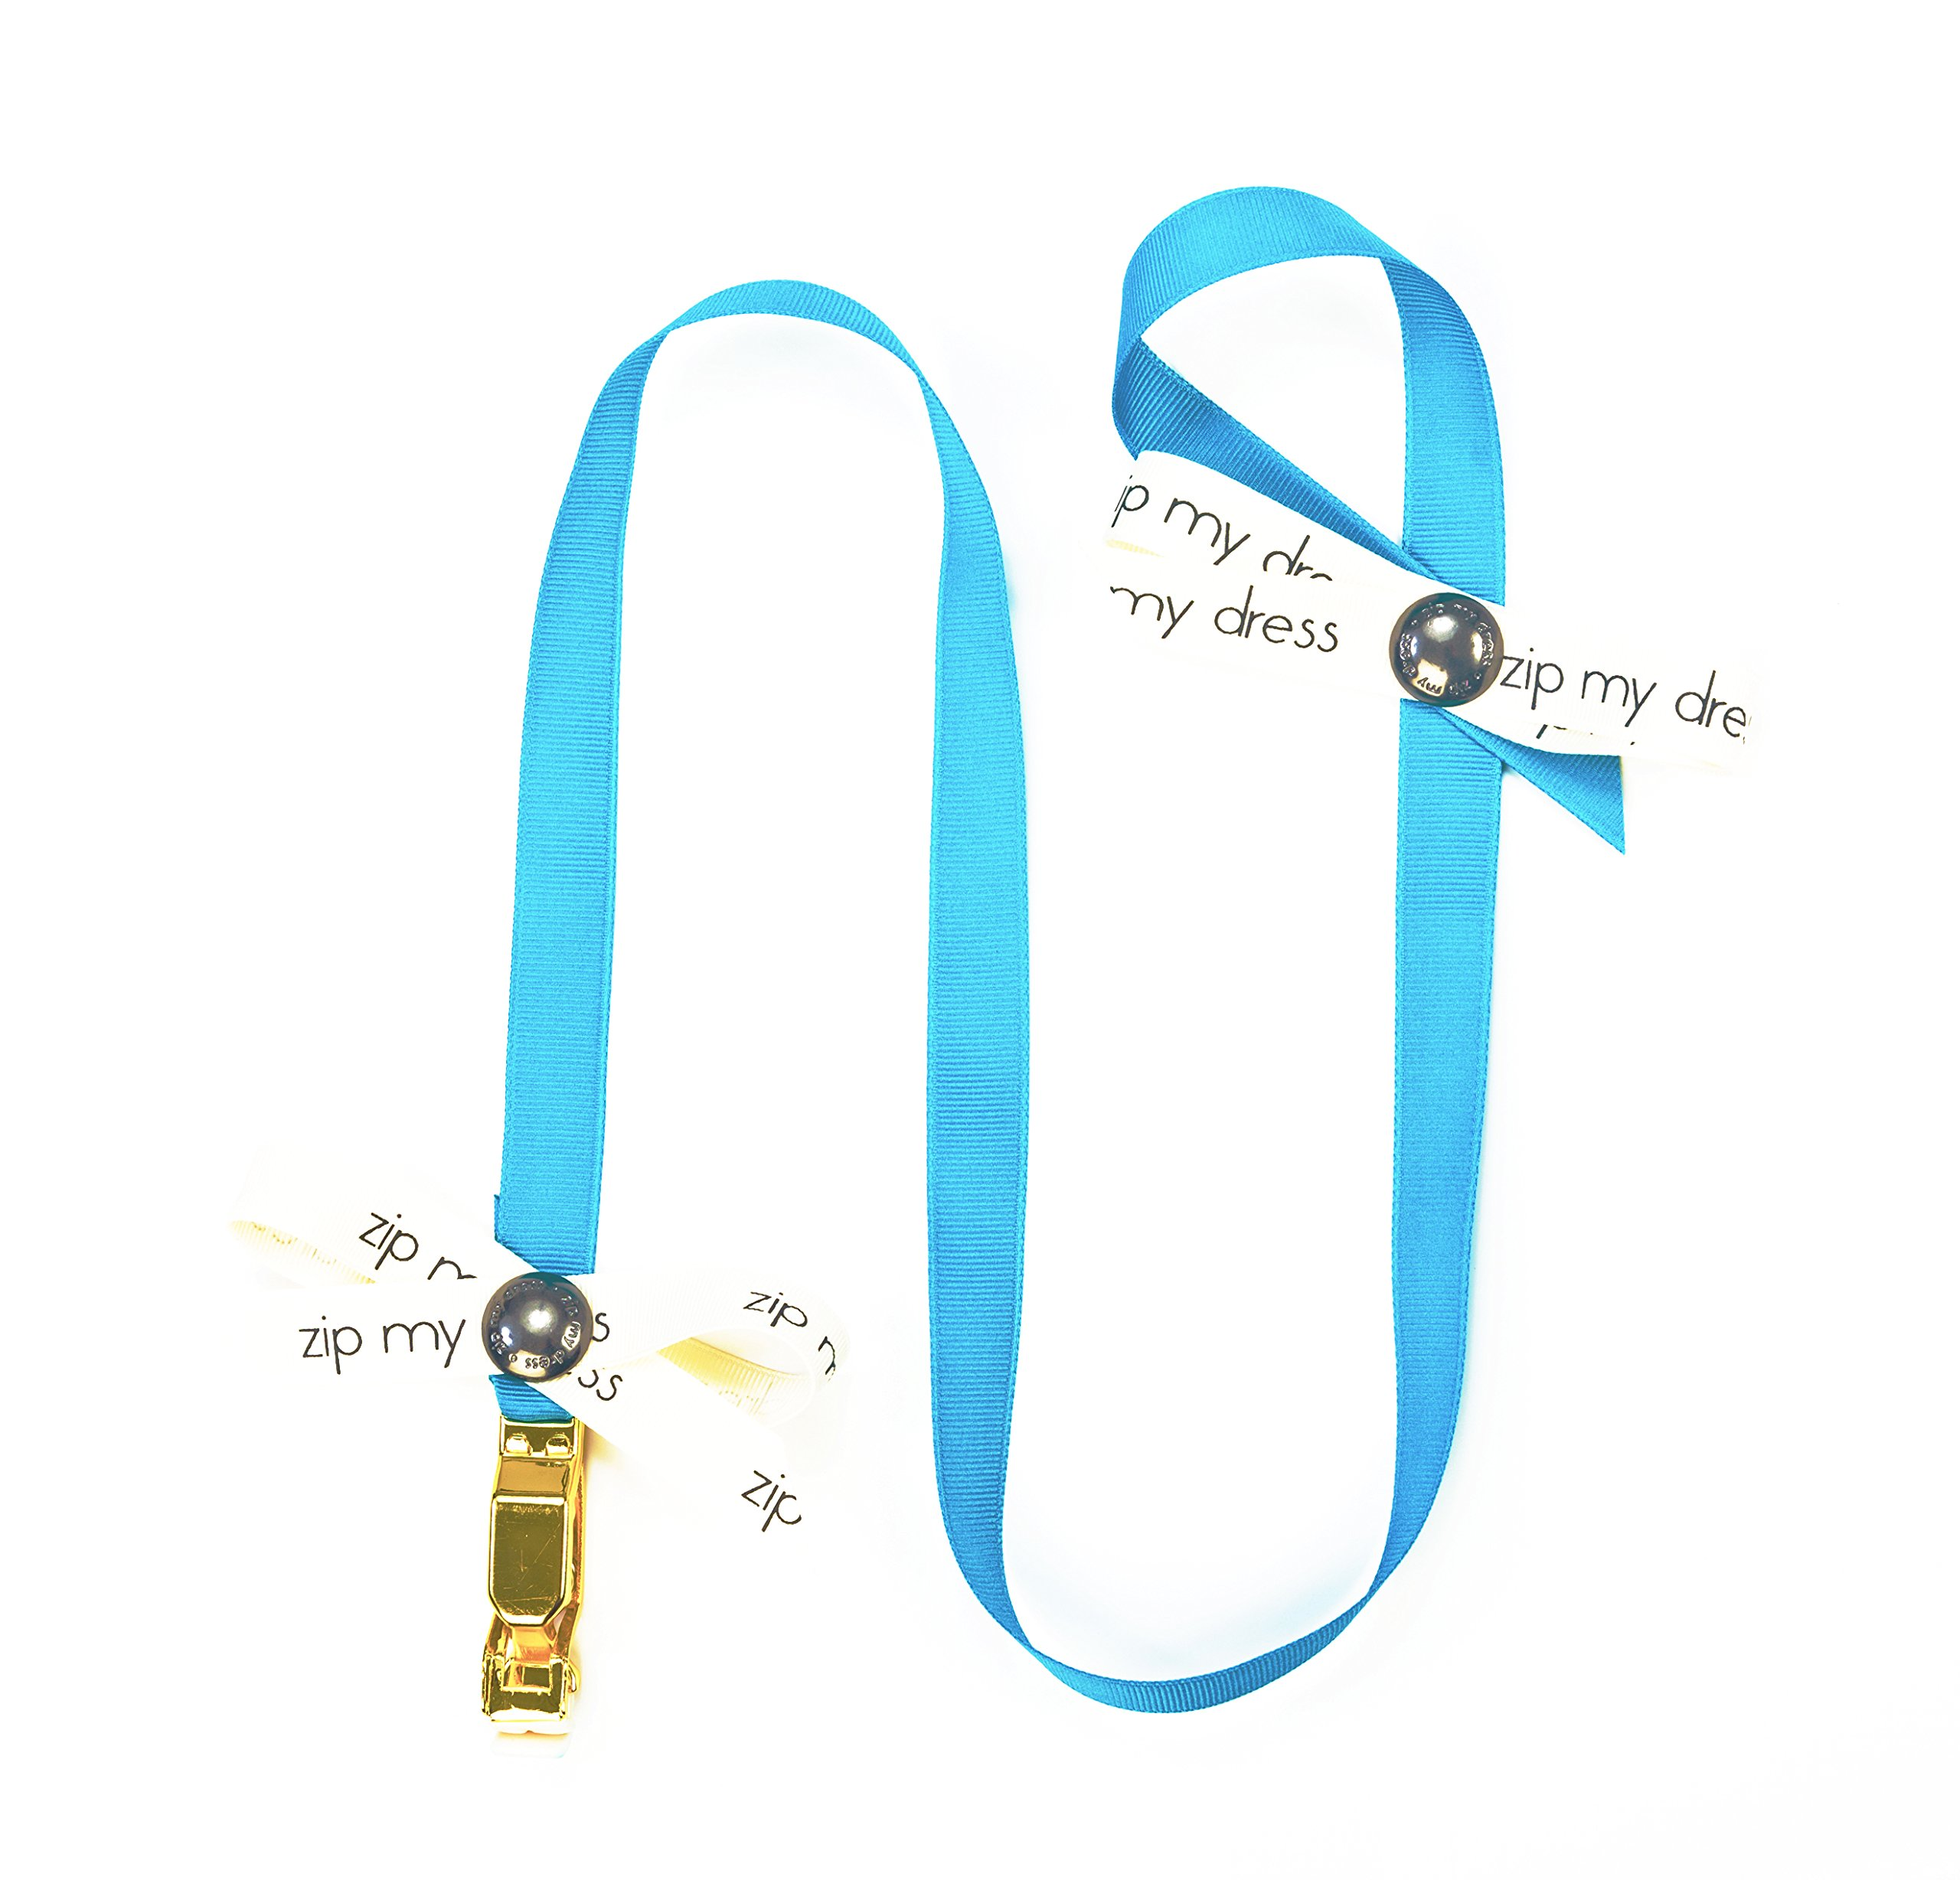 Zip My Dress Zipper Puller with Turquoise Blue Ribbon | Zipper Aid